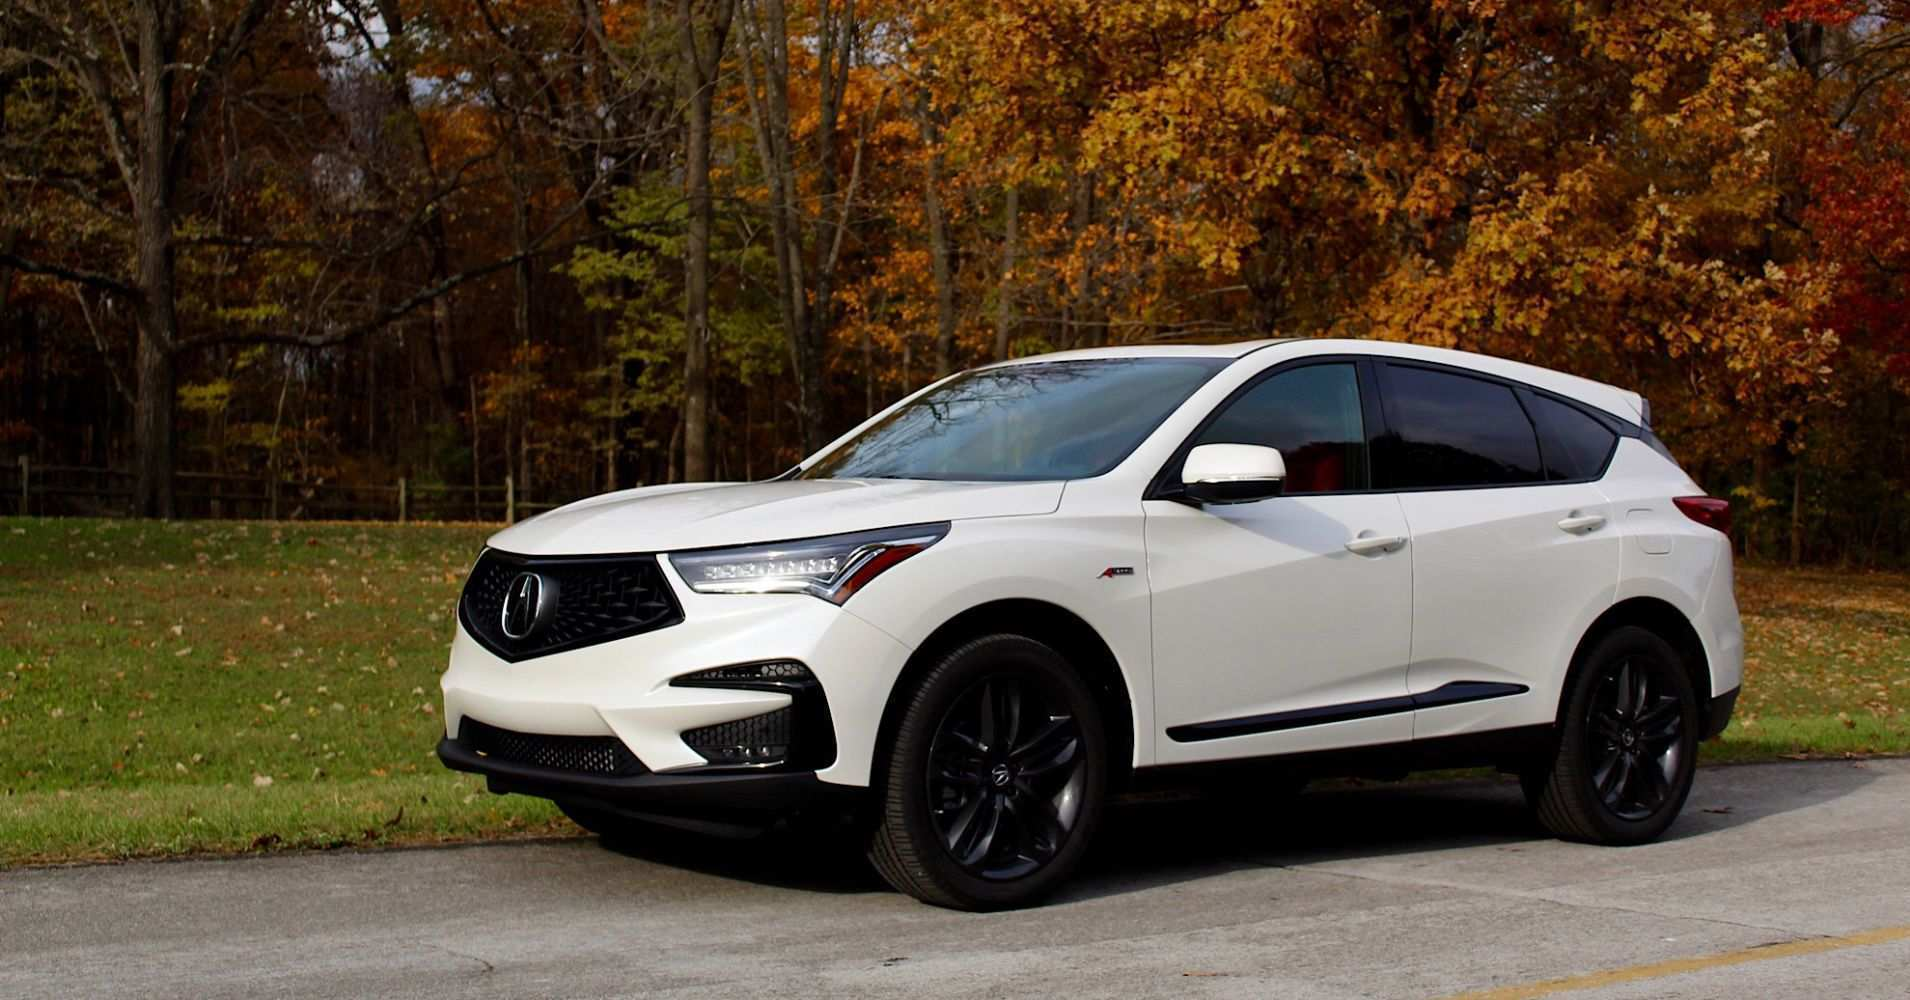 31 Great Best Acura Rdx 2018 Vs 2019 New Release Picture by Best Acura Rdx 2018 Vs 2019 New Release